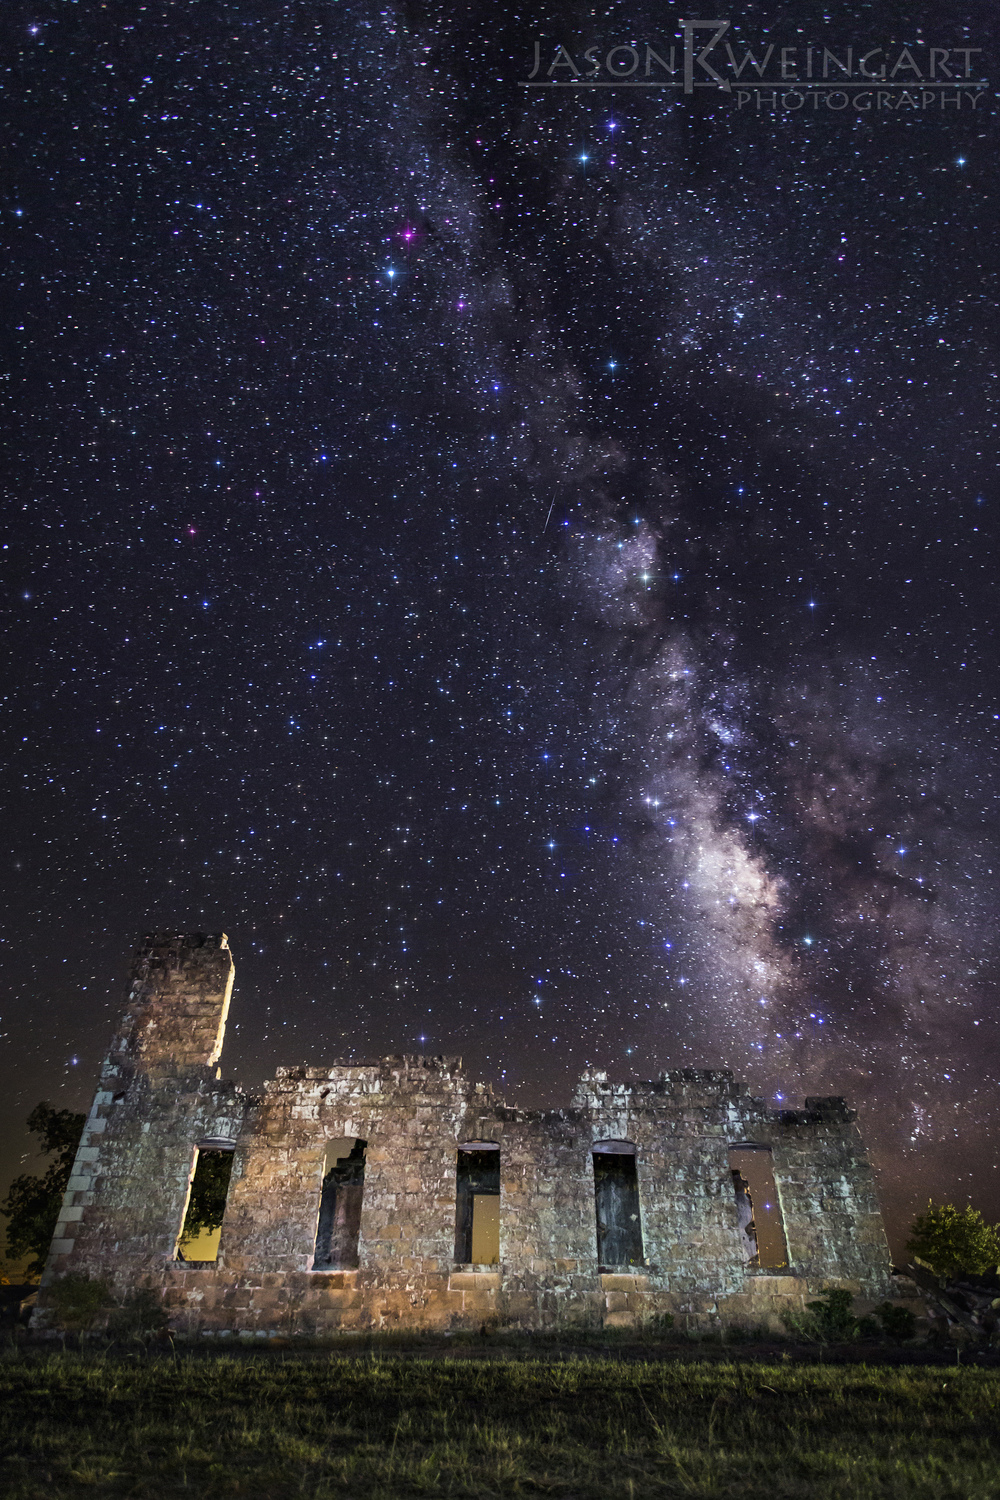 The ruins of the San Fernando Academy under the Milky Way. Shot on September 22, 2013